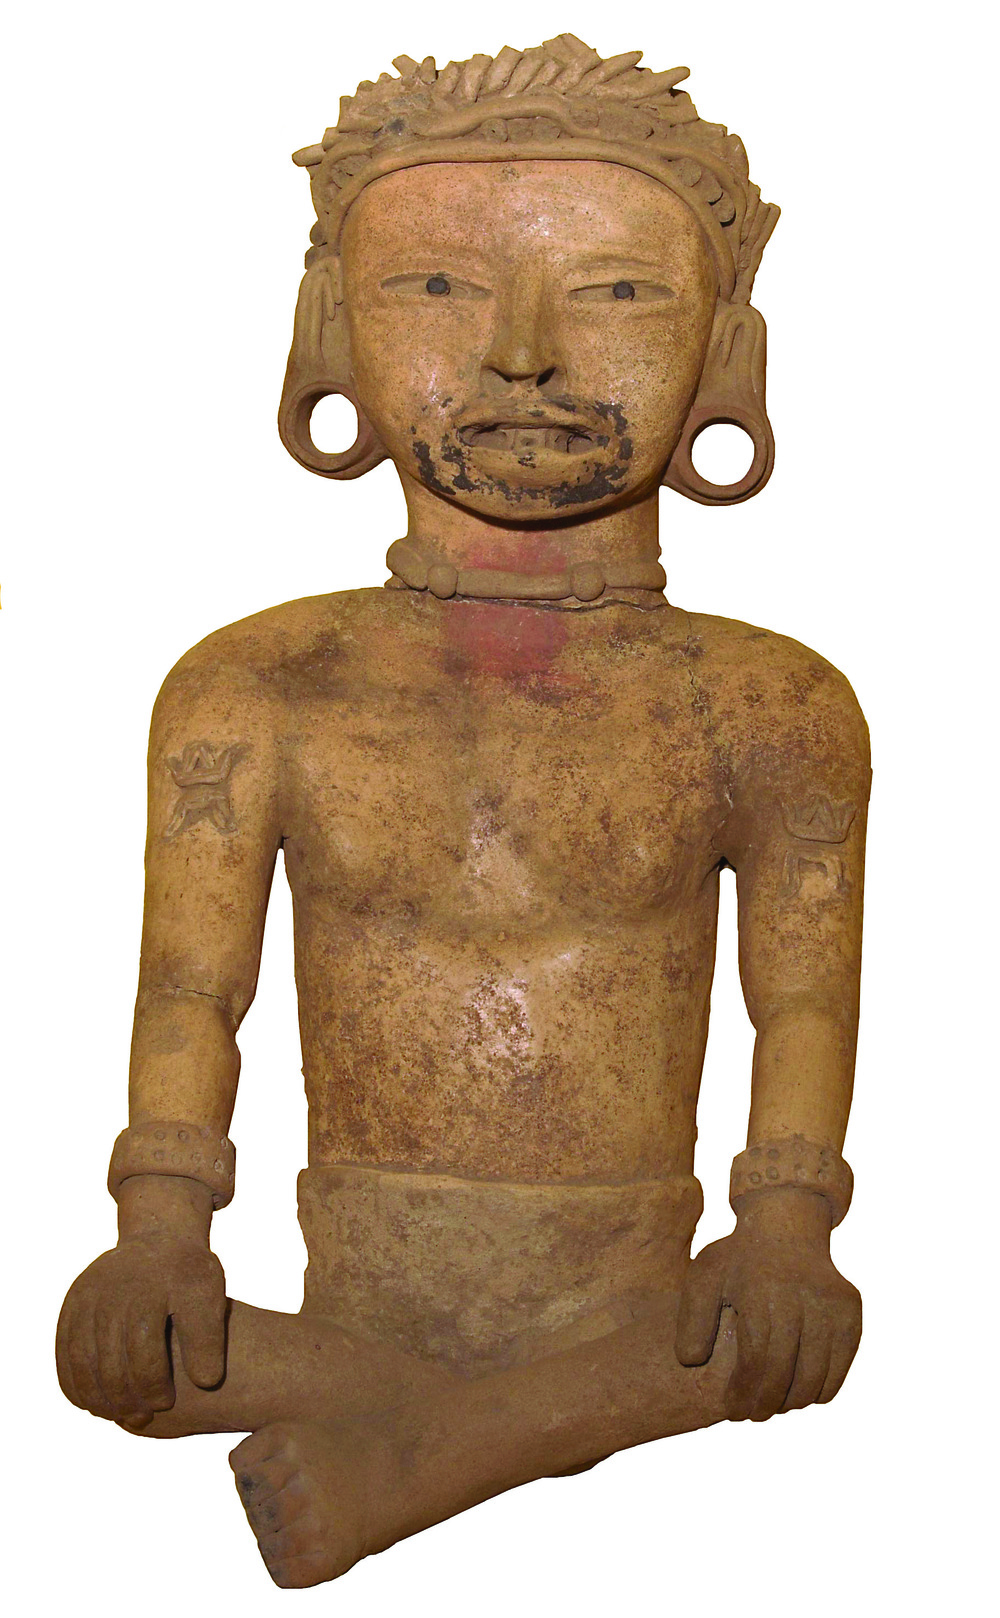 Remojadas Culture, Seated Male Figure, 500-700 CE, Ceramic, Polk Museum of Art Permanent Collection 1983.1.6, Gift of Dr. and Mrs. David Taxdal.